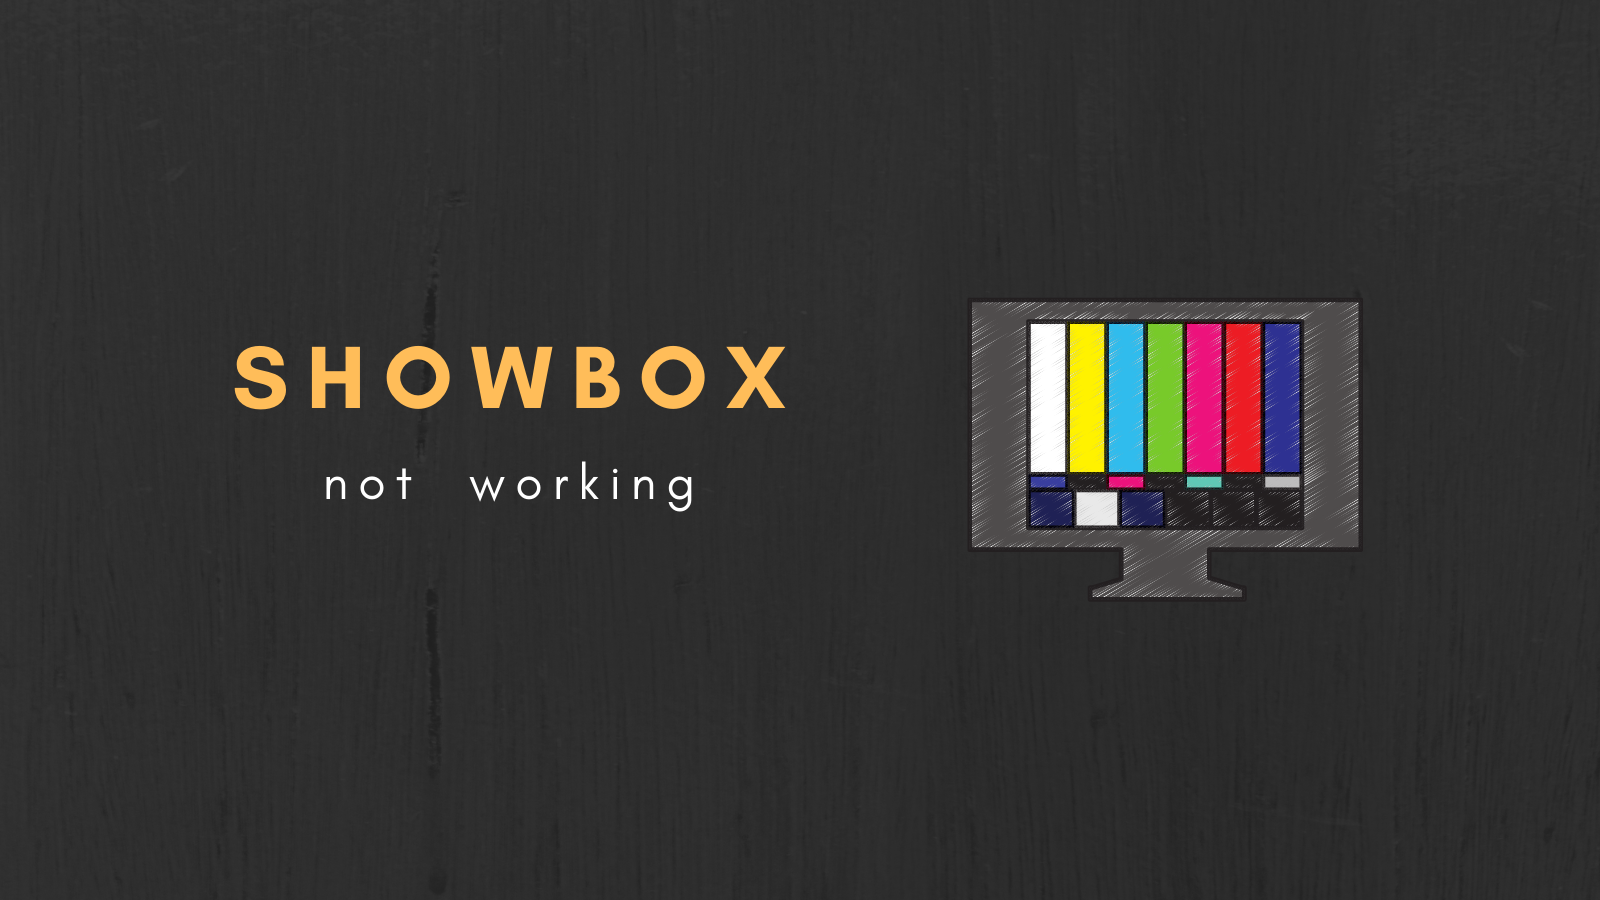 How to Fix Showbox Not Working?